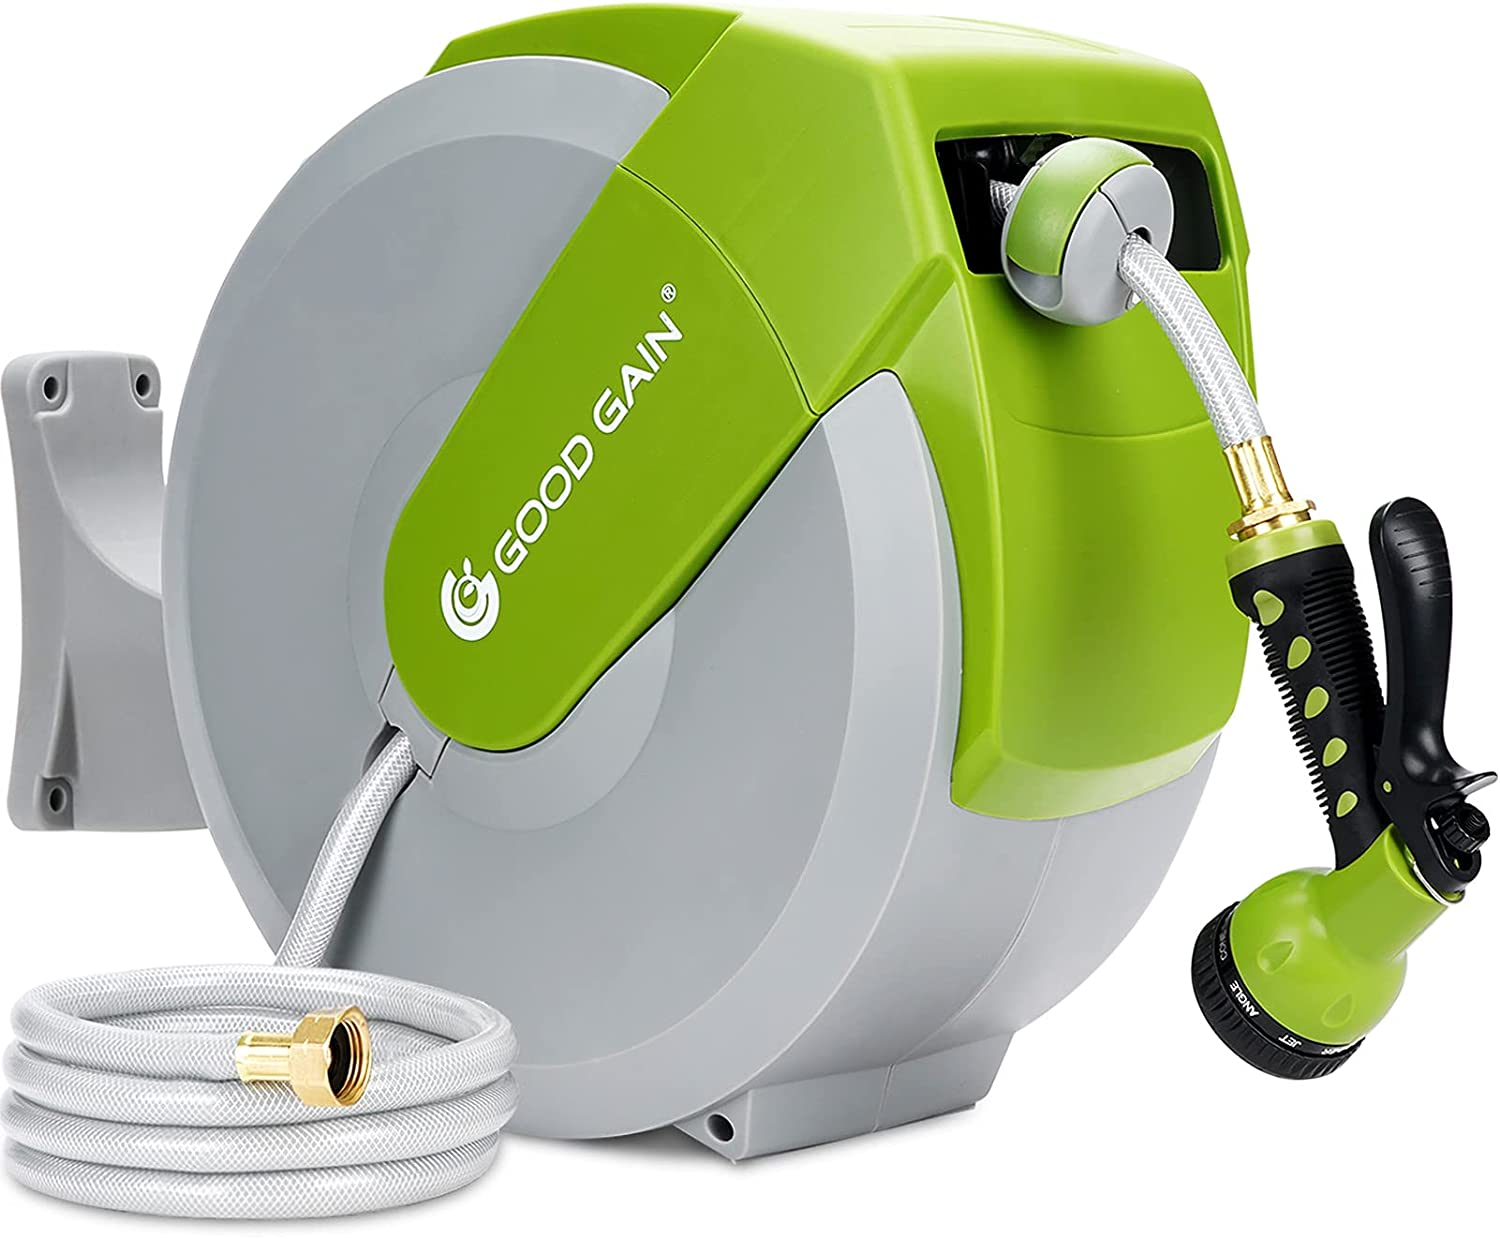 Retractable Garden Hose Reel,82+7ft Auto Rewind Water Hose Holder,180°Swivel Bracket Wall Mounted Water Hose Reel,Slow Return System, Any Length Lock,9 Patterns Hose Nozzle for Yard Watering, Car Wash